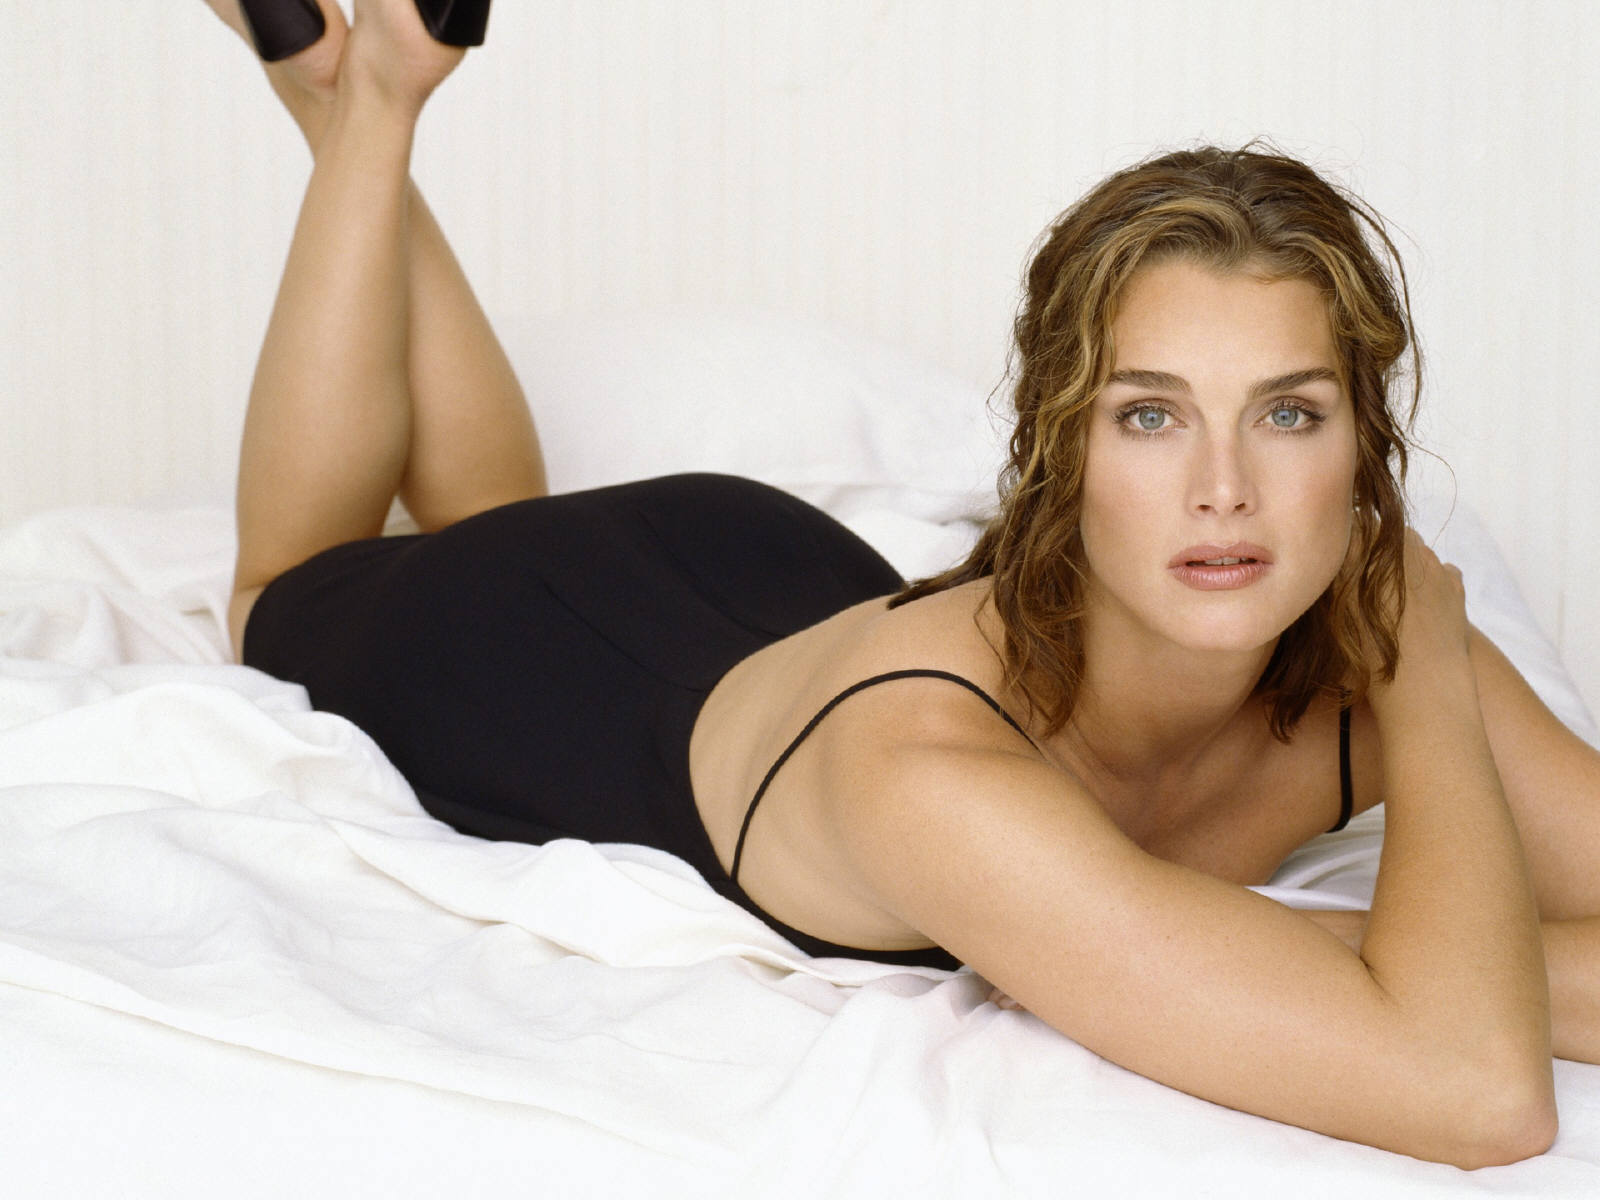 http://3.bp.blogspot.com/_p2EstT5Z5BU/TH4FuLxqXOI/AAAAAAAAA0Q/VGVVRsUNoJ8/s1600/Brooke+Shields+Wallpapers+4.jpg